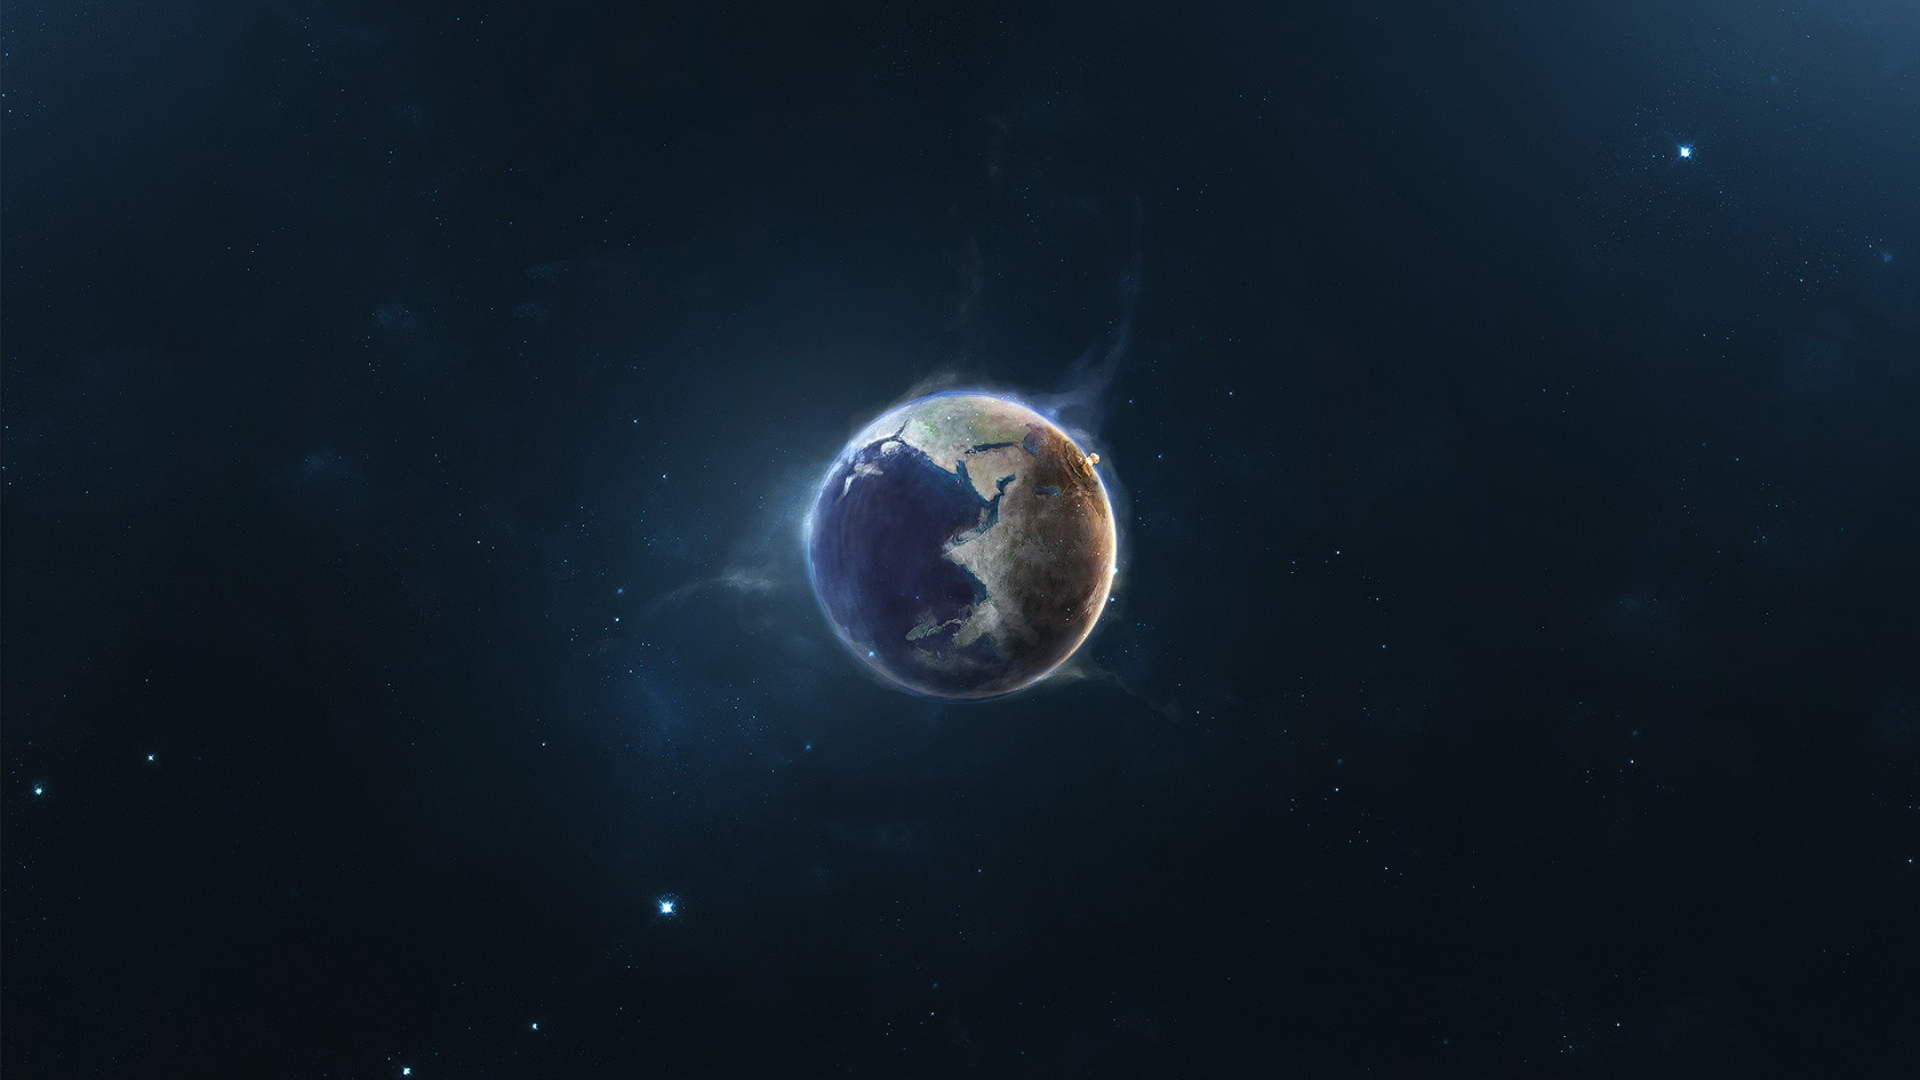 Earth Wallpaper HD 1080p - WallpaperSafari